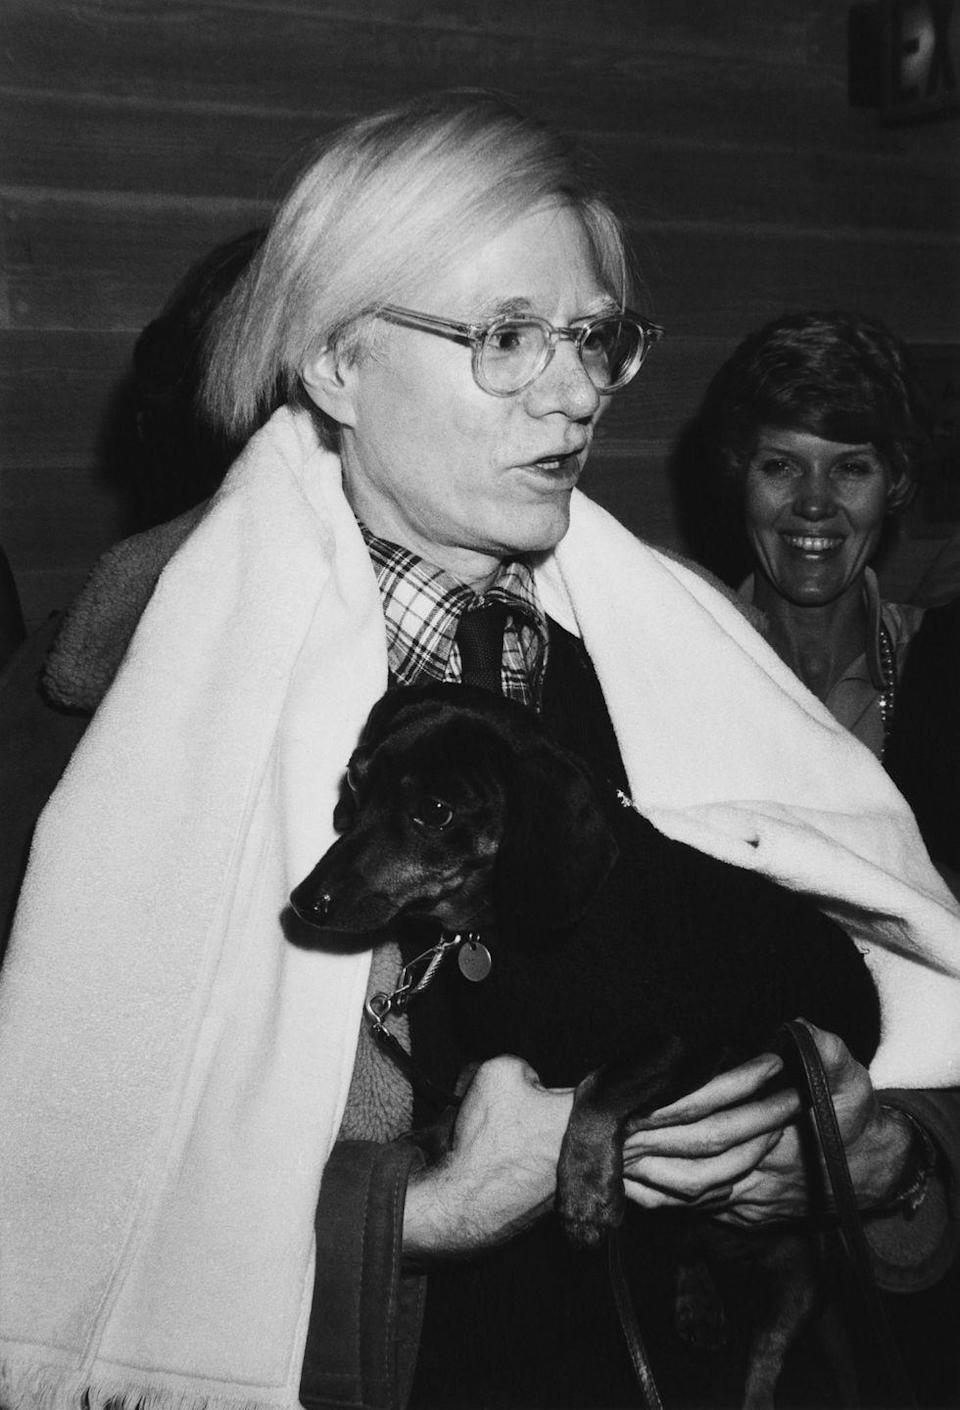 <p>Even New York City's social elite ate at McDonald's back in the day! Here, Andy Warhol attends a black tie dinner hosted at a McDonald's on Fifth Avenue in aid of the Muscular Dystrophy Association. His plus one? His beloved dachshund, Archie.</p>